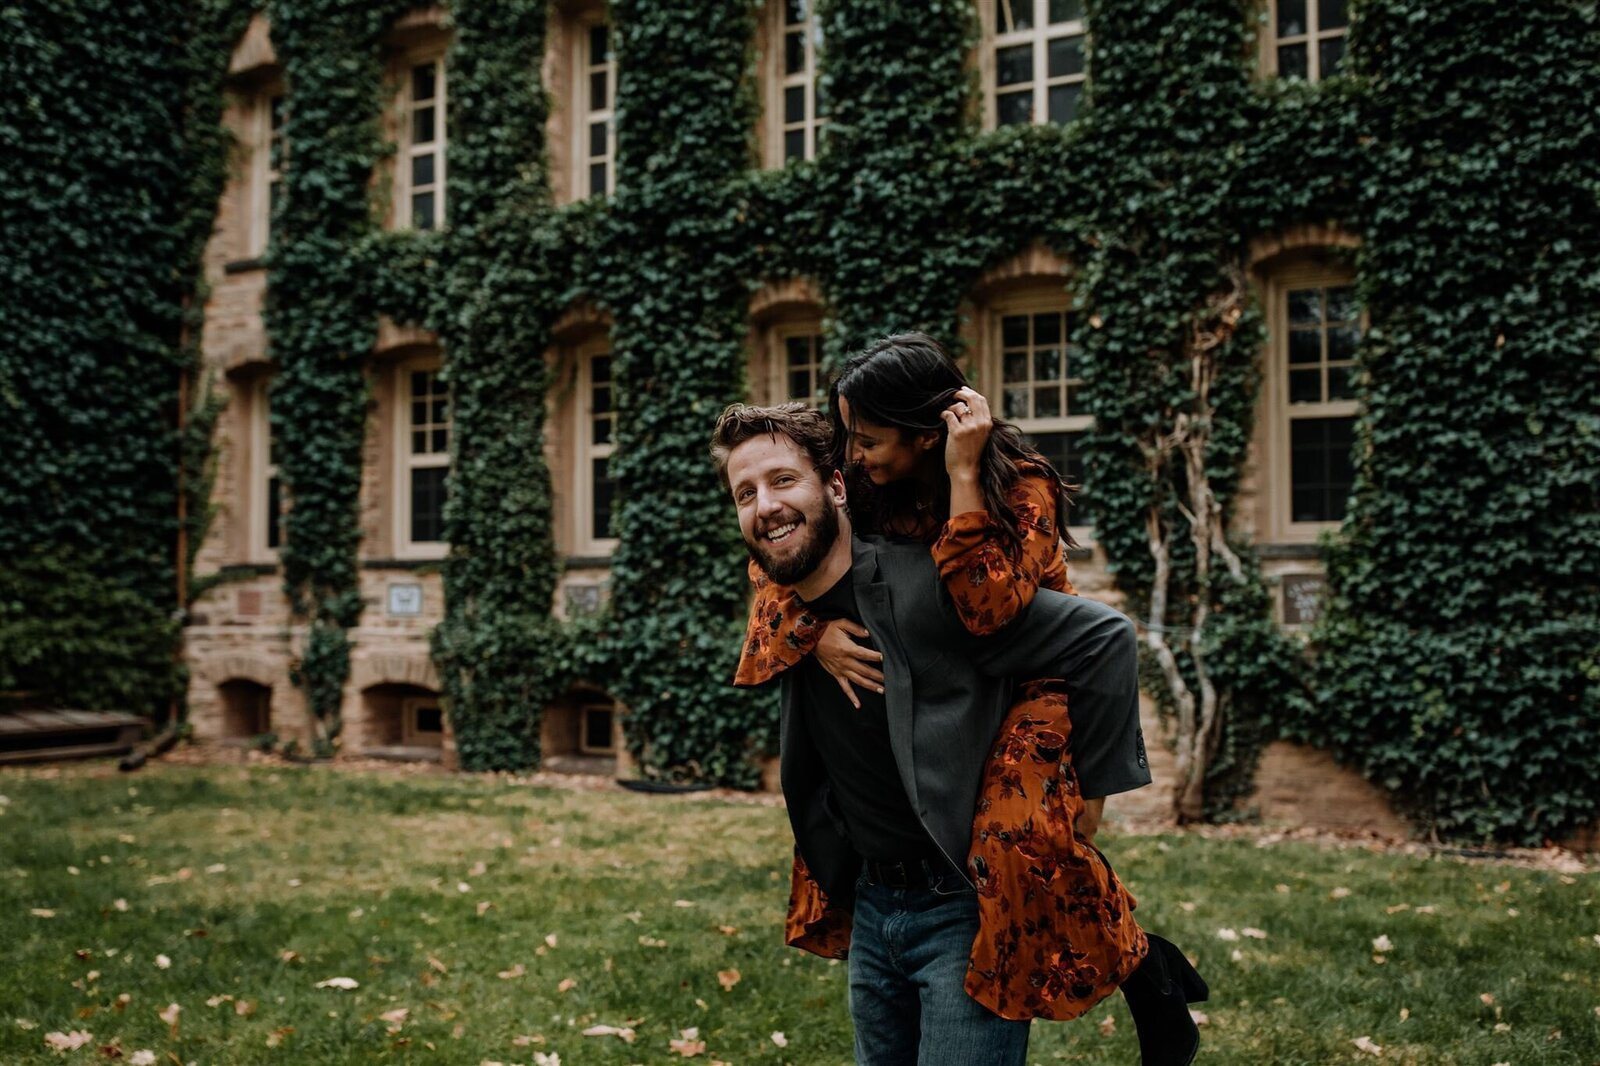 princeton-university-engagement-photos-171_websize